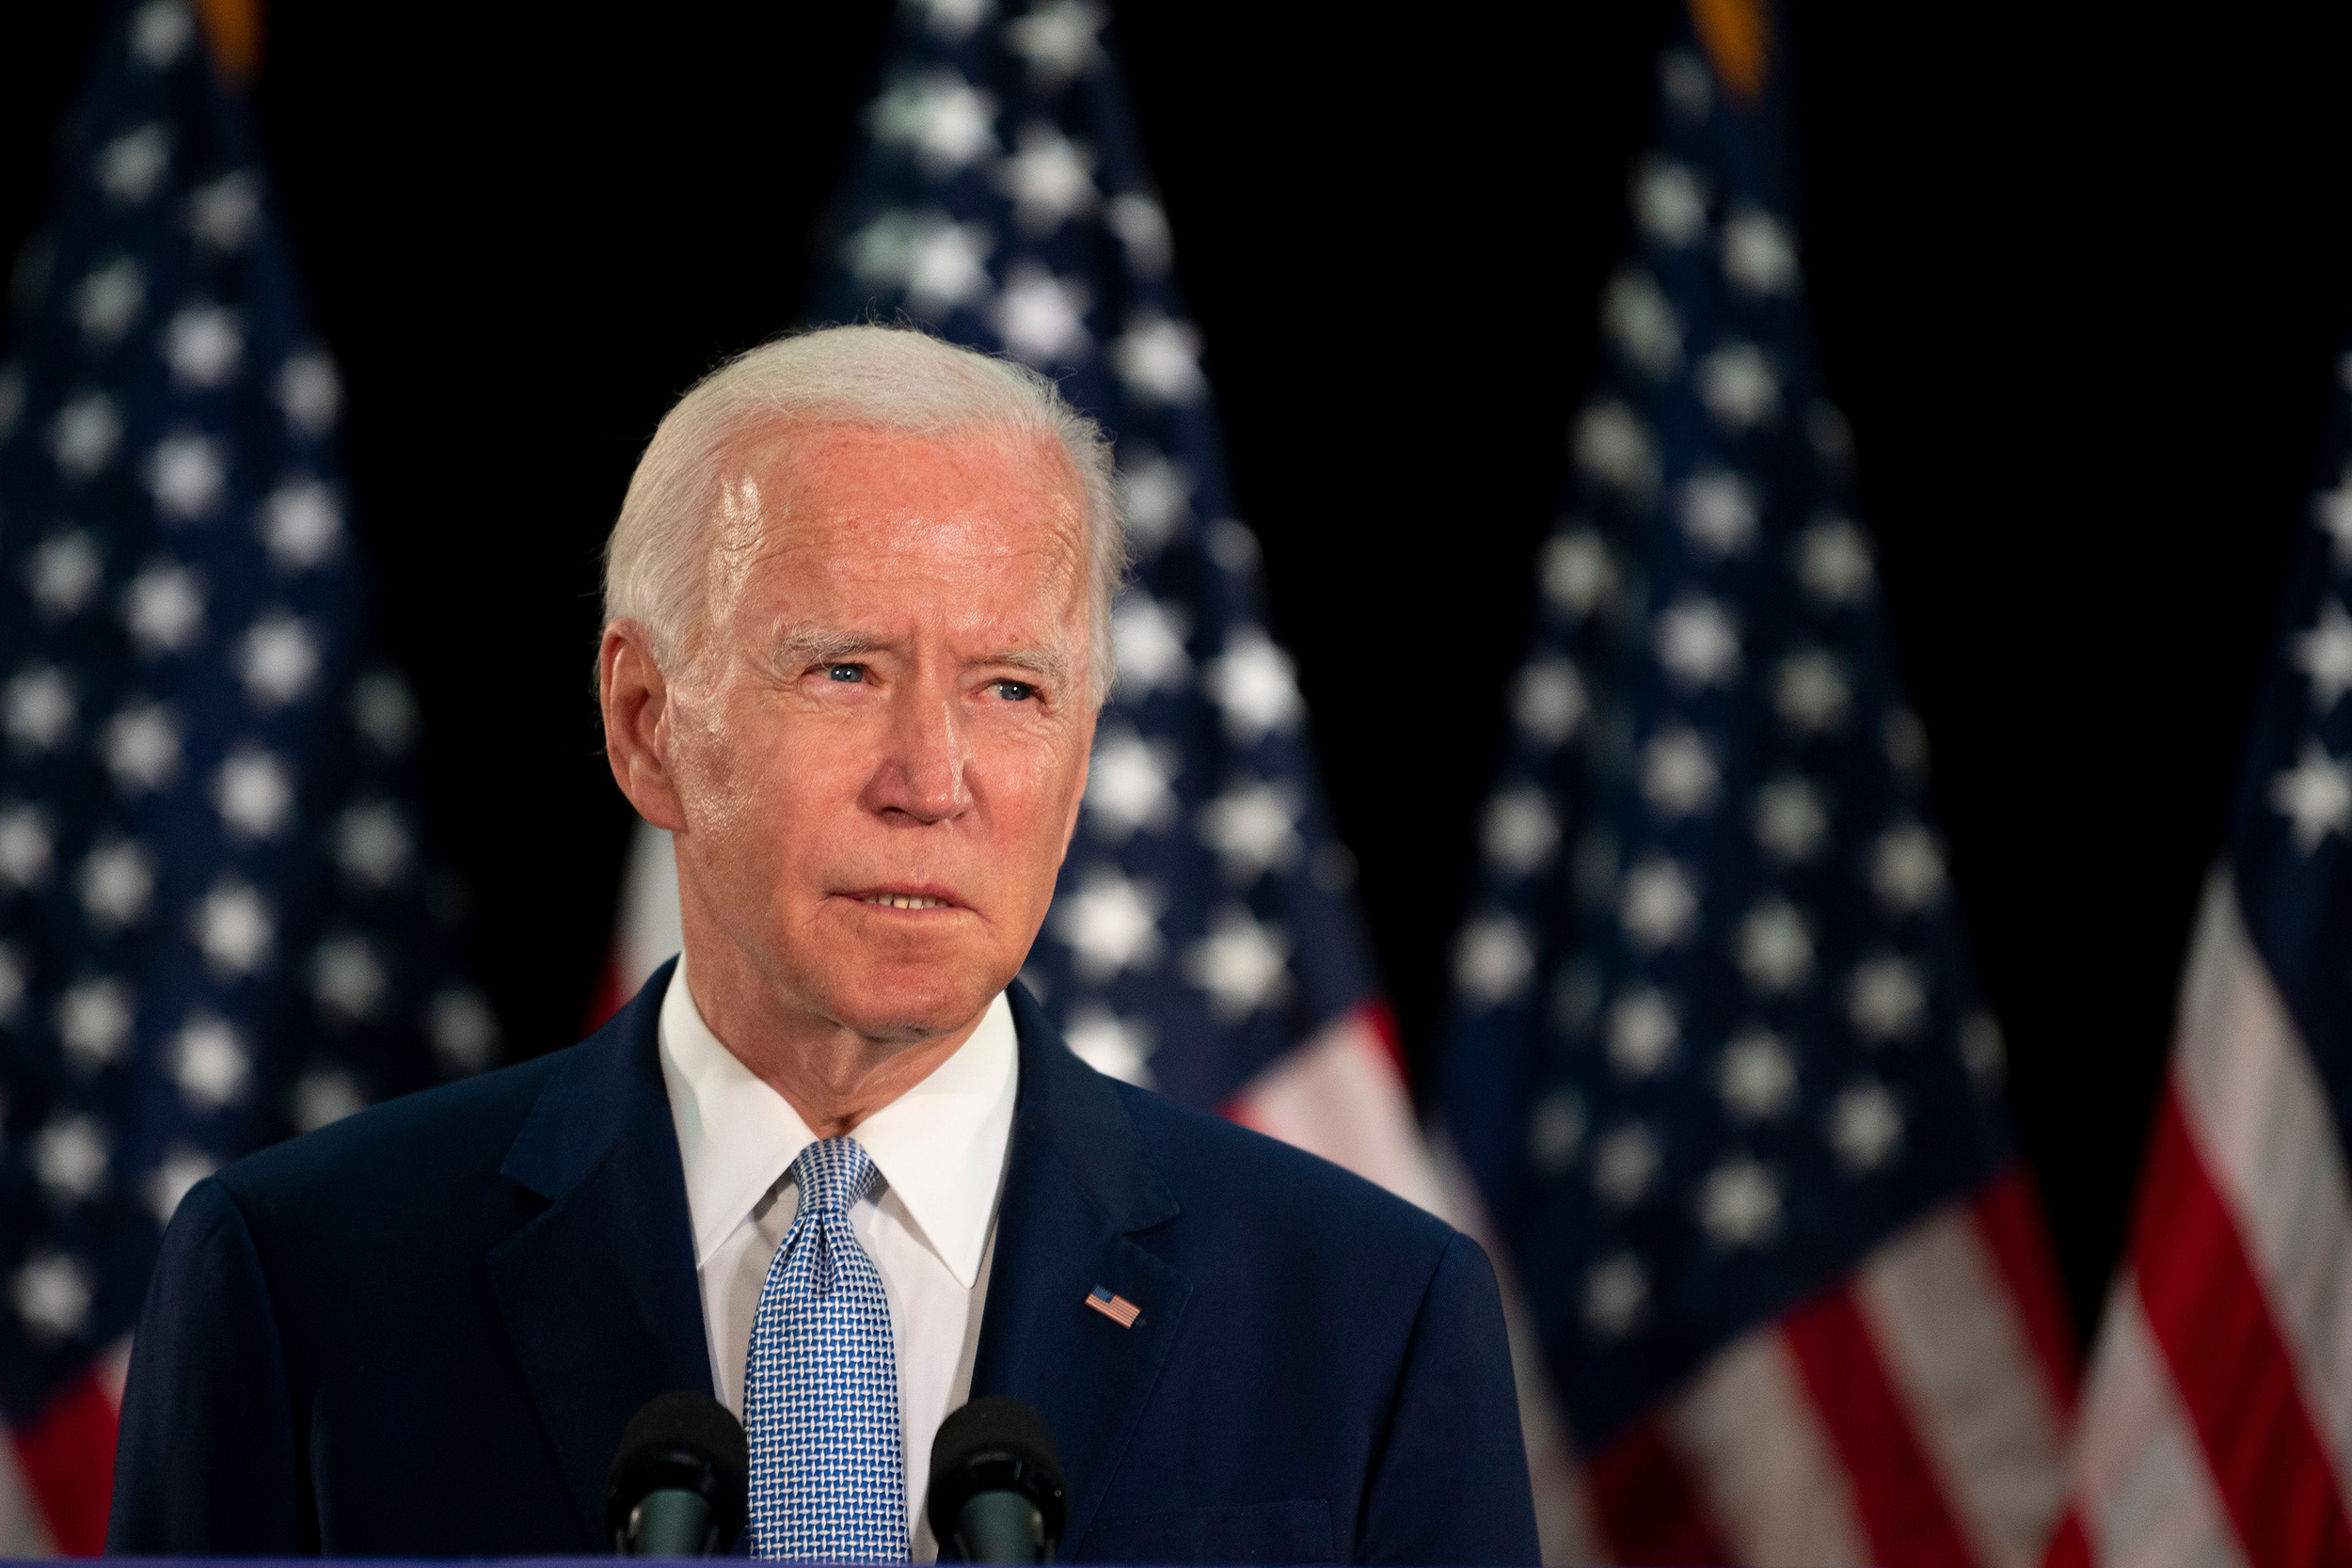 Presumptive Democratic presidential nominee and former Vice President Joe Biden speaks at the Delaware State University student center in Dover, Delaware, on June 5.